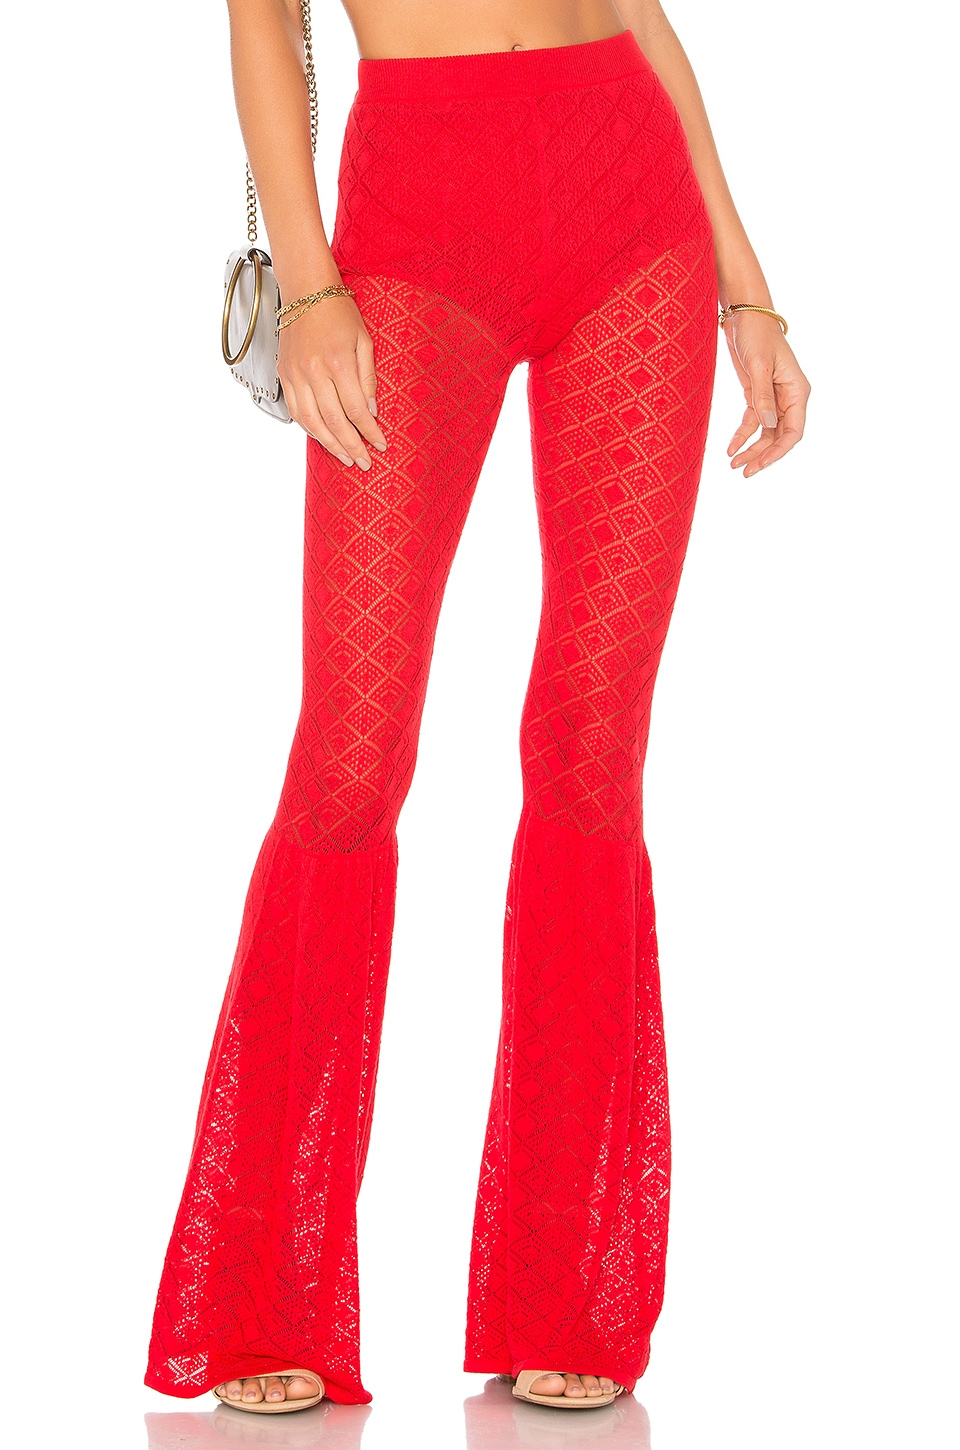 House of Harlow 1960 x REVOLVE Jeane Pant in Racing Red